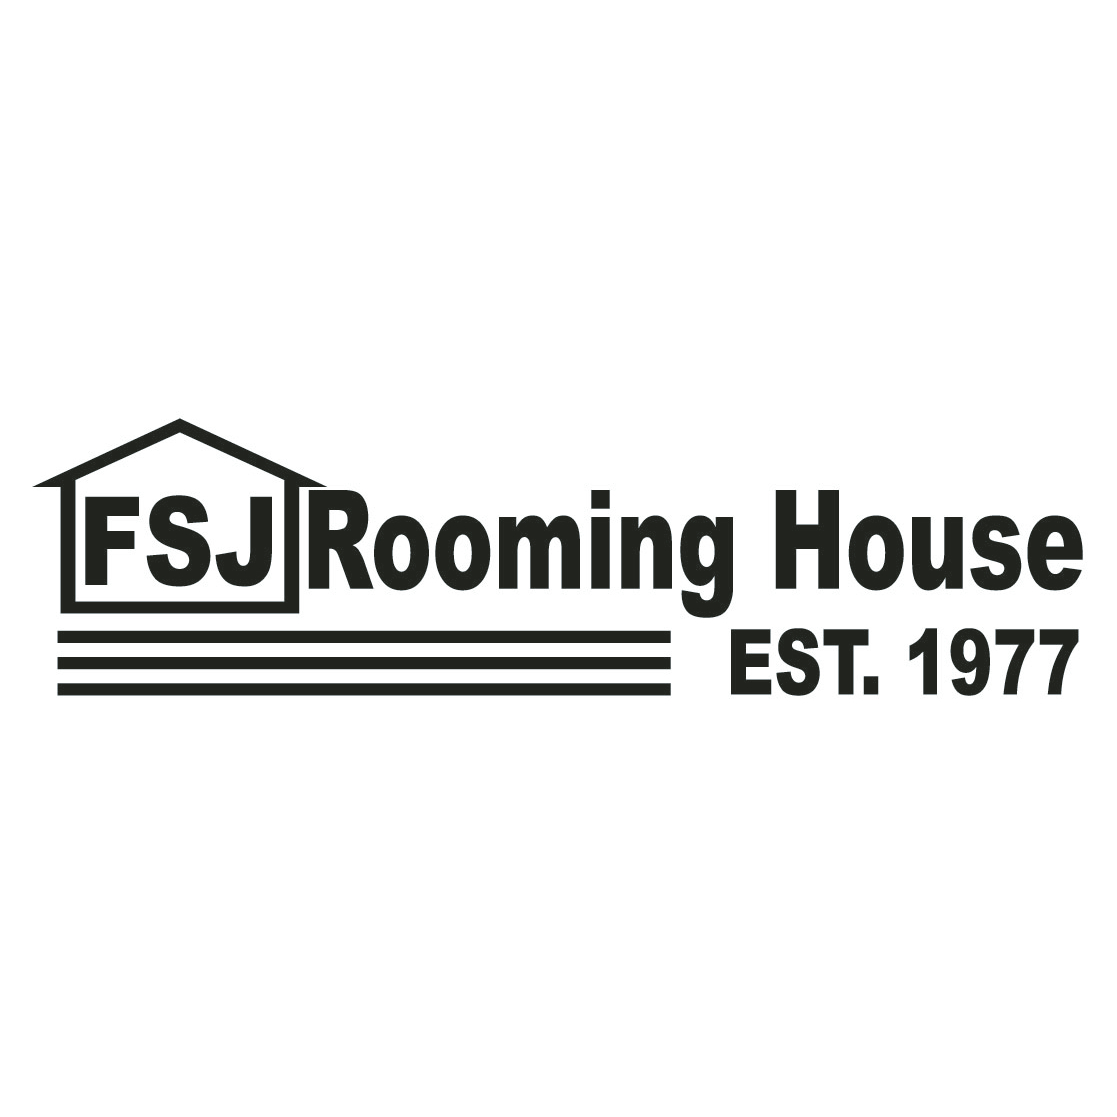 Rooming House Review